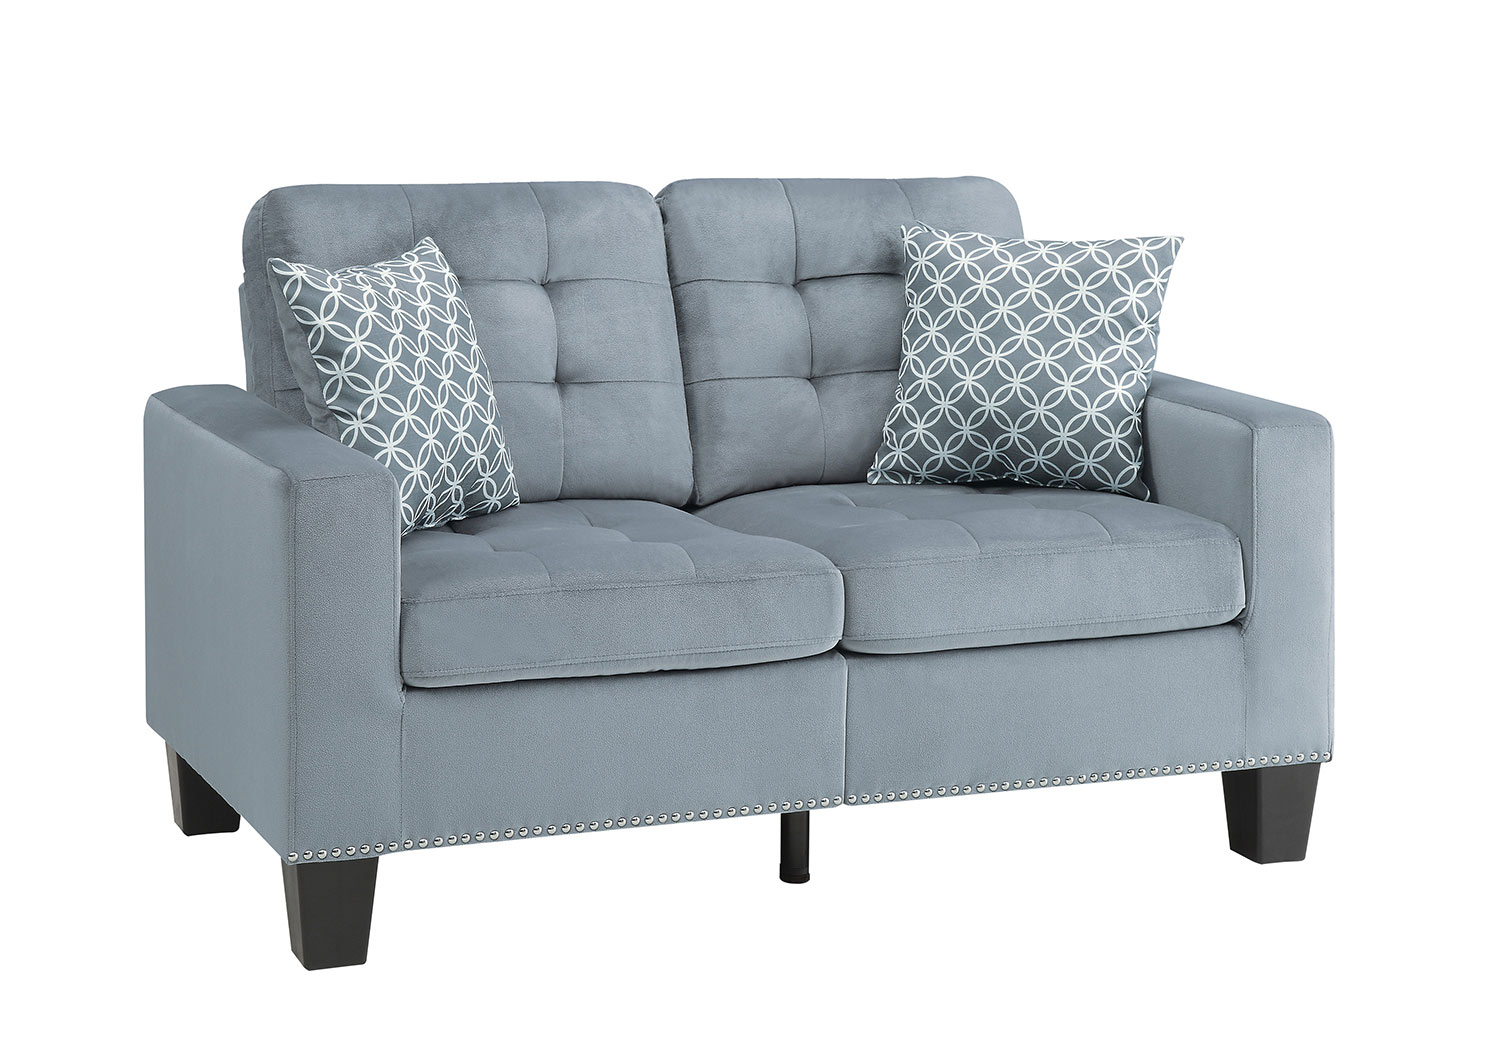 Homelegance Lantana Love Seat - Gray